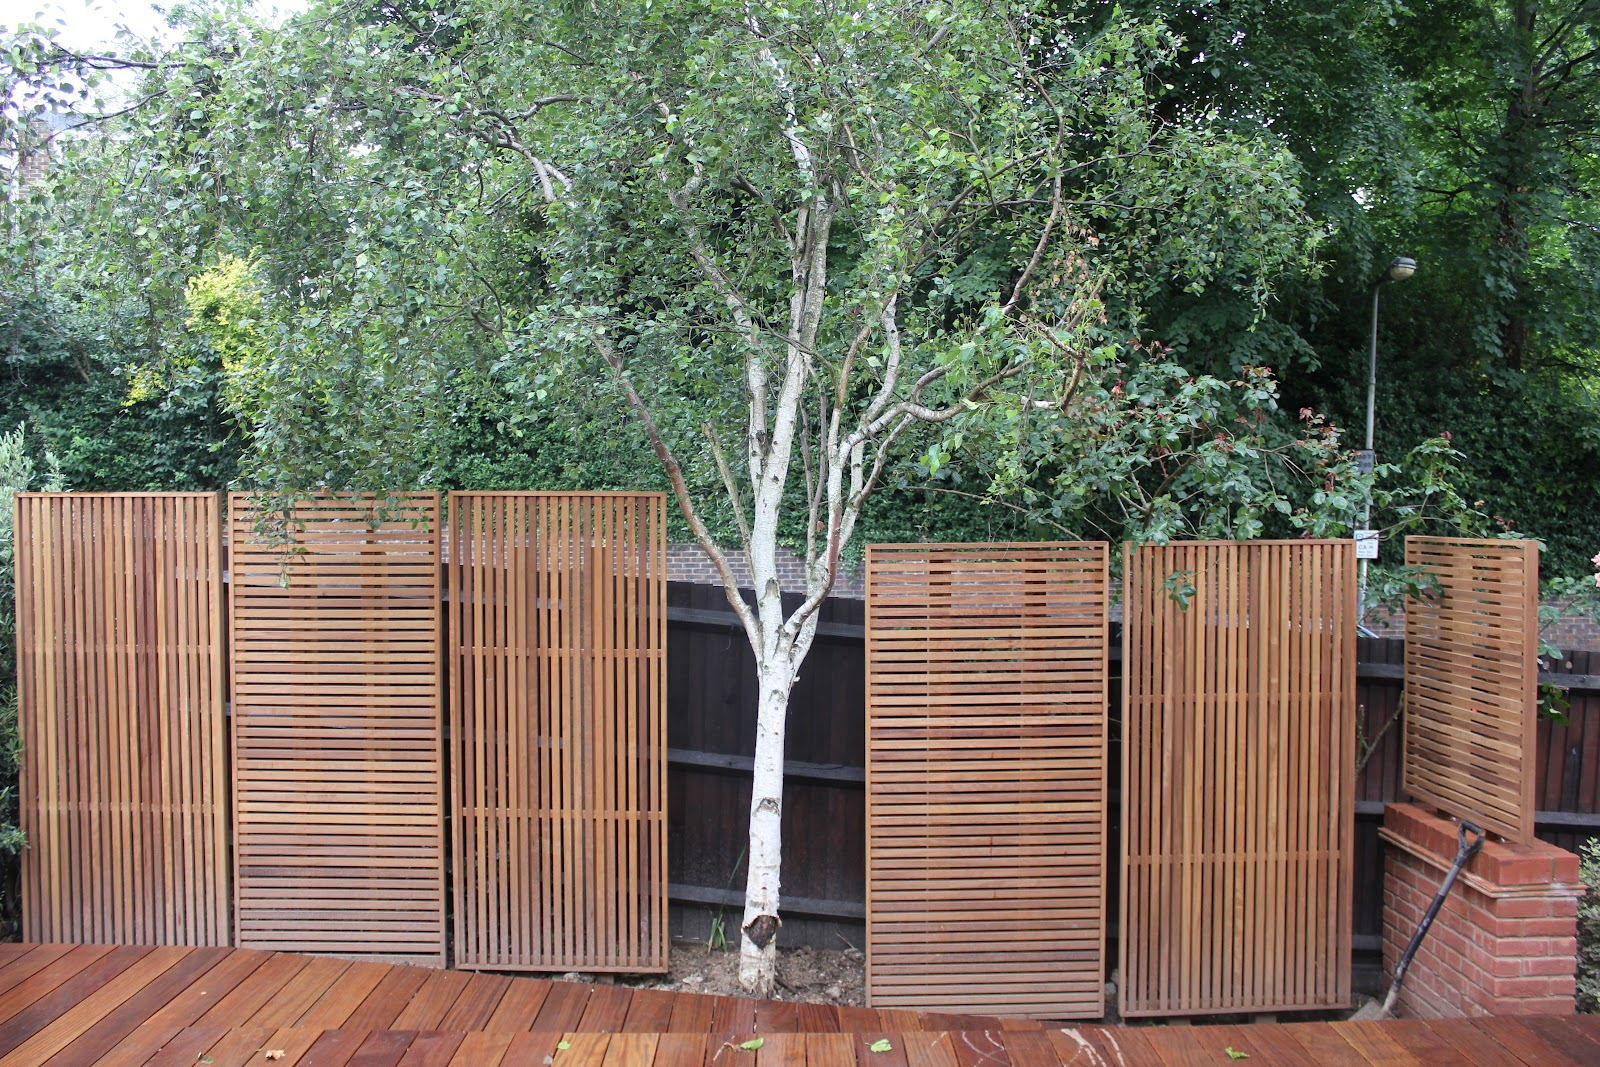 Jdh joinery and timberscape hampstead hard wood slatted for Wooden garden screen designs